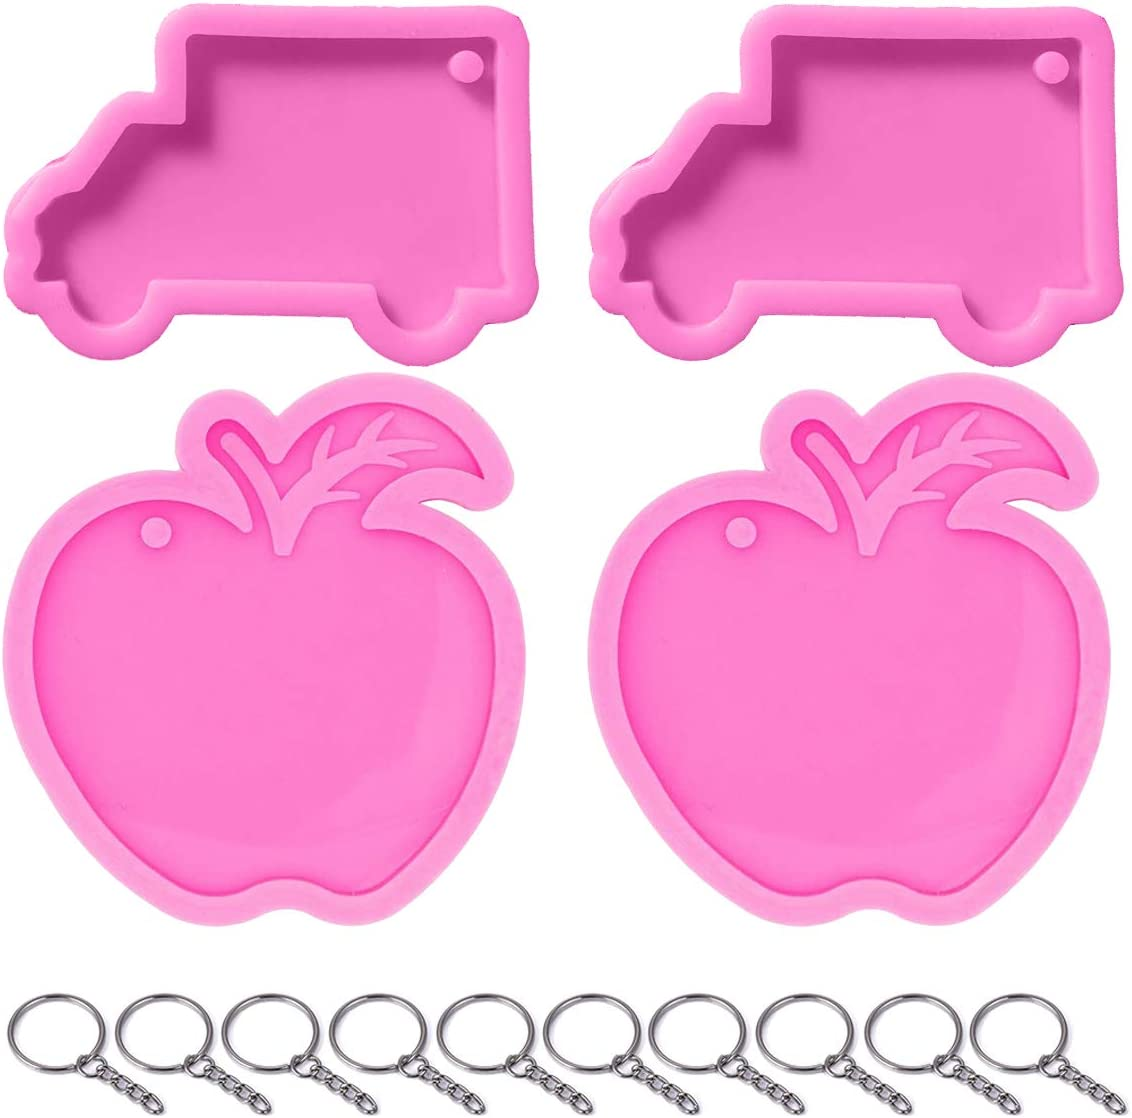 4 Packs Silicone Keychain Molds Apple Fruit Shaped Tag And 2 Packs School Bus Shaped Keychain Molds And 10 Pieces Key Rings with Chain Christmas Mold (school bus)